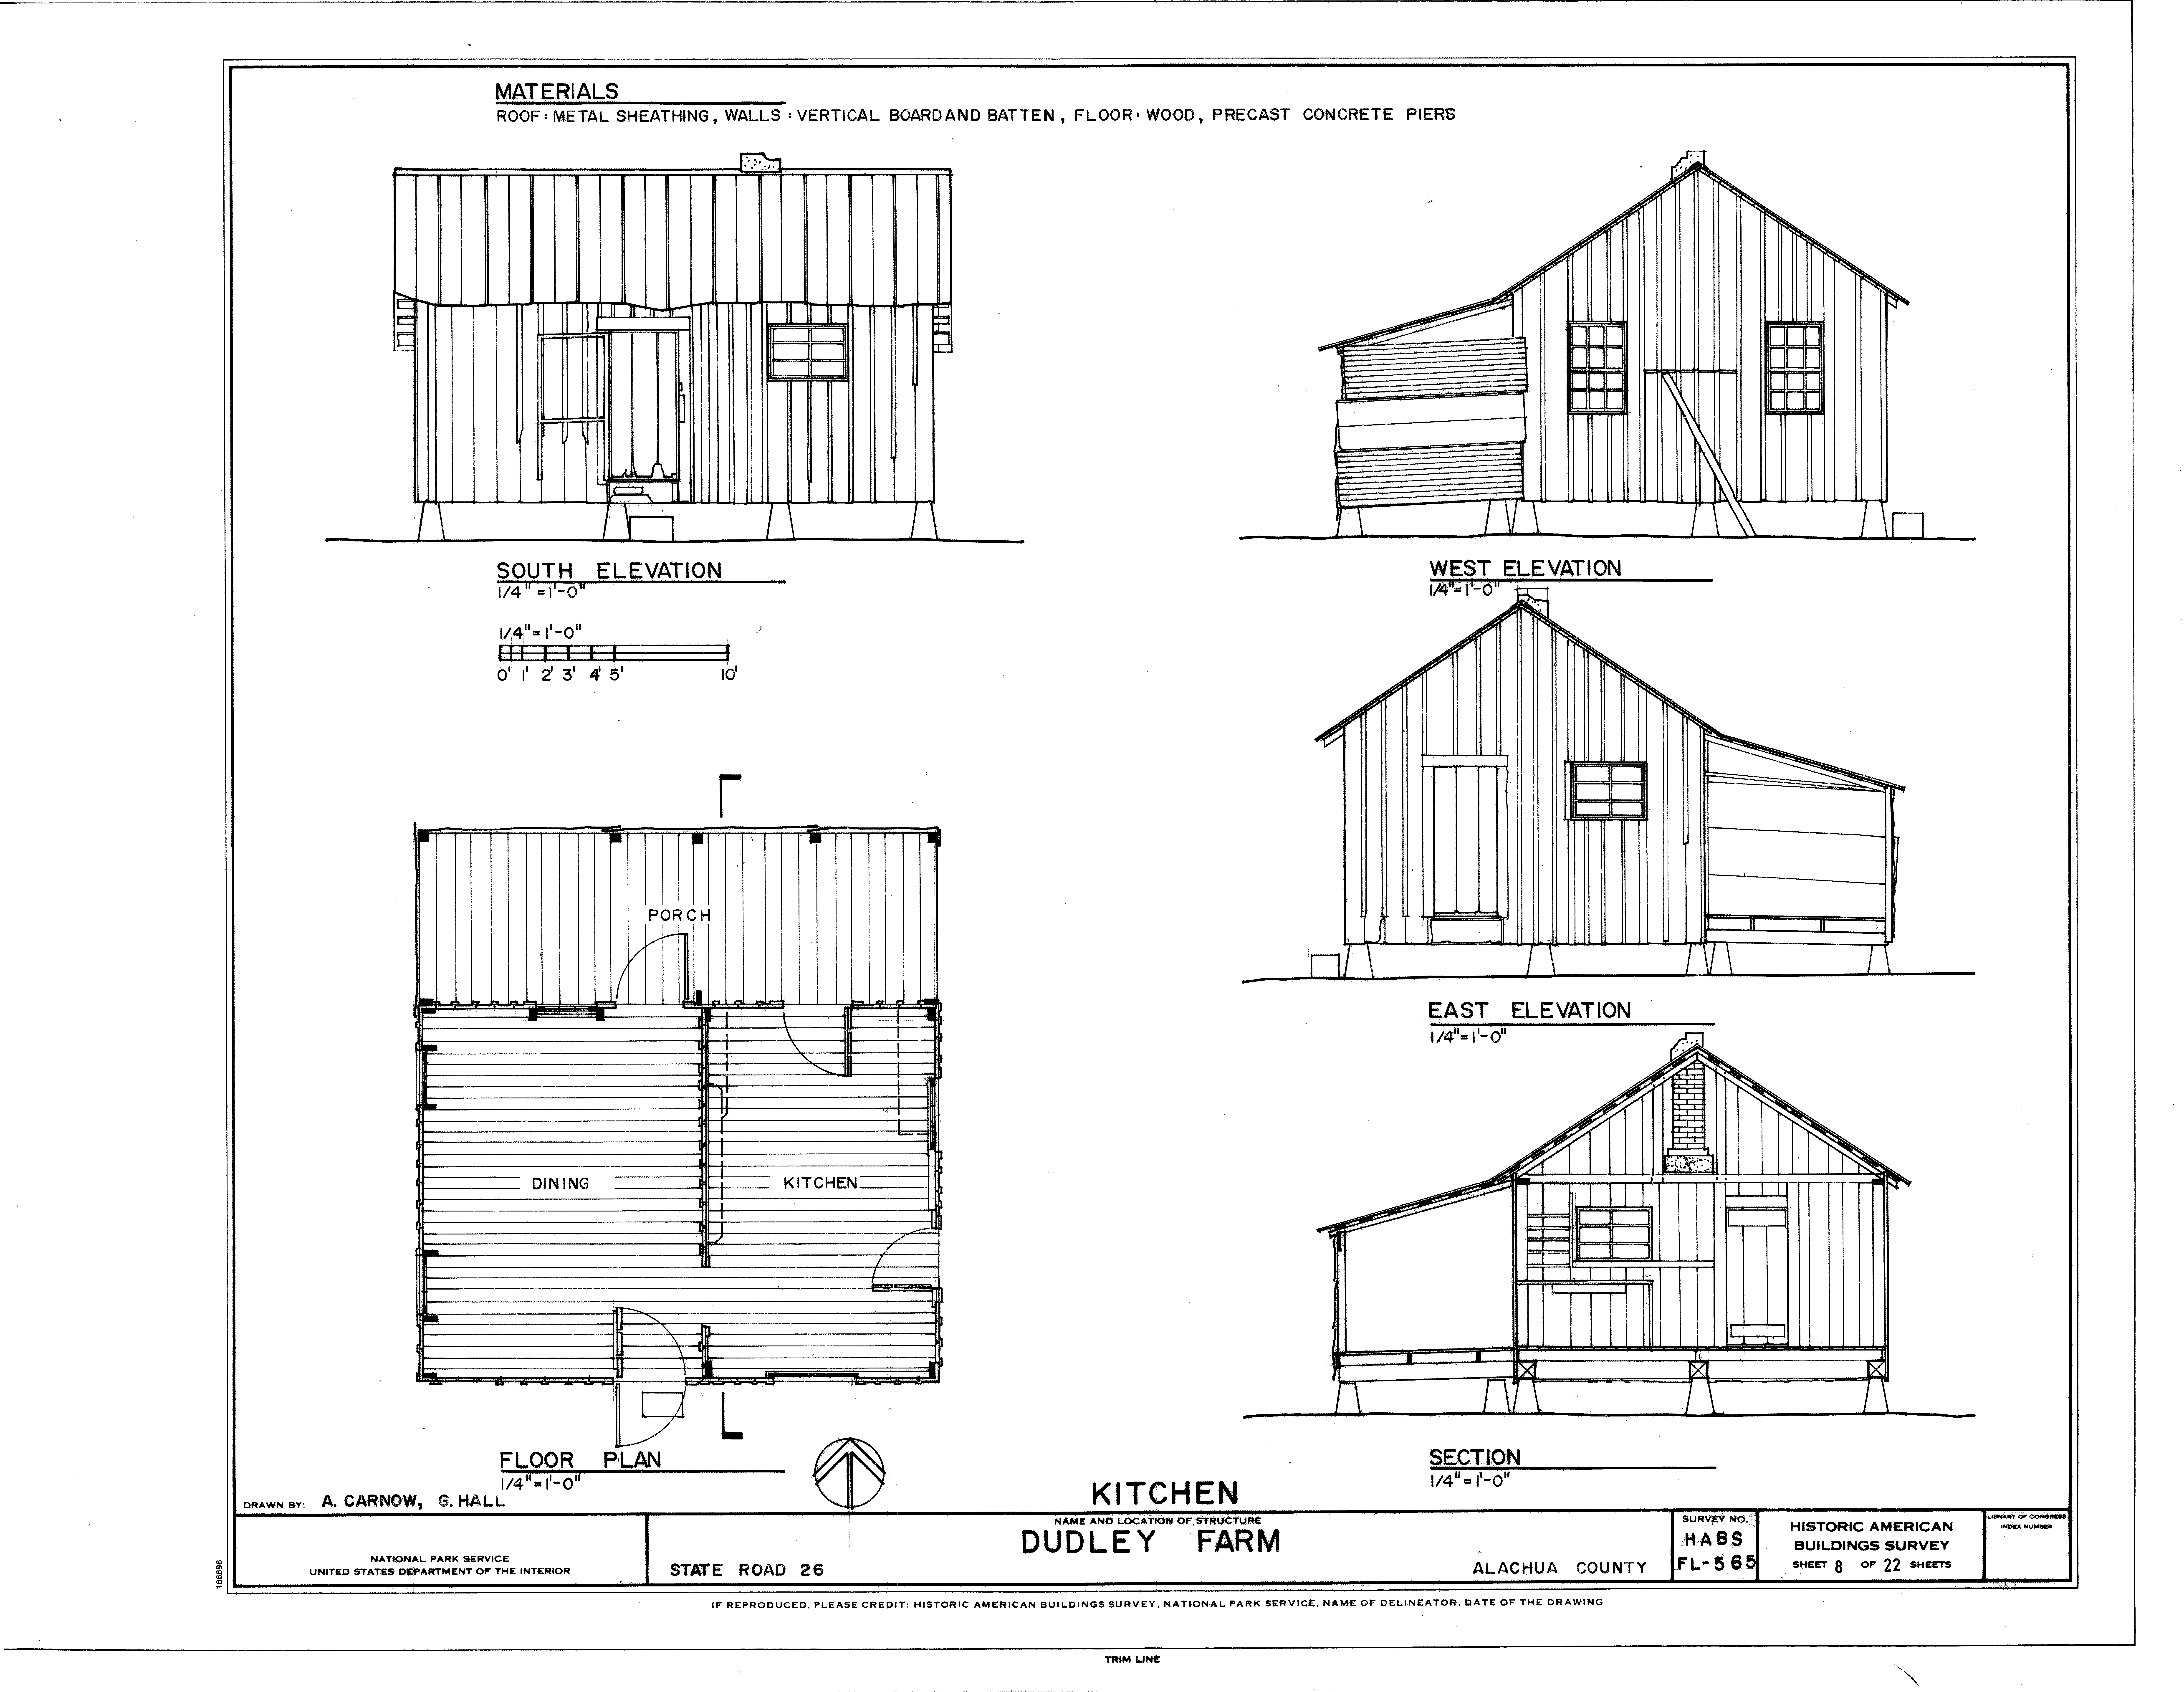 File Kitchen   Elevations  Floor Plan and Section   Dudley Farm  Farmhouse and Outbuildings  18730 West Newberry Road  Newberry  Alachua County  FL HABS FL 565  sheet 8 of 22 on roof details dwg